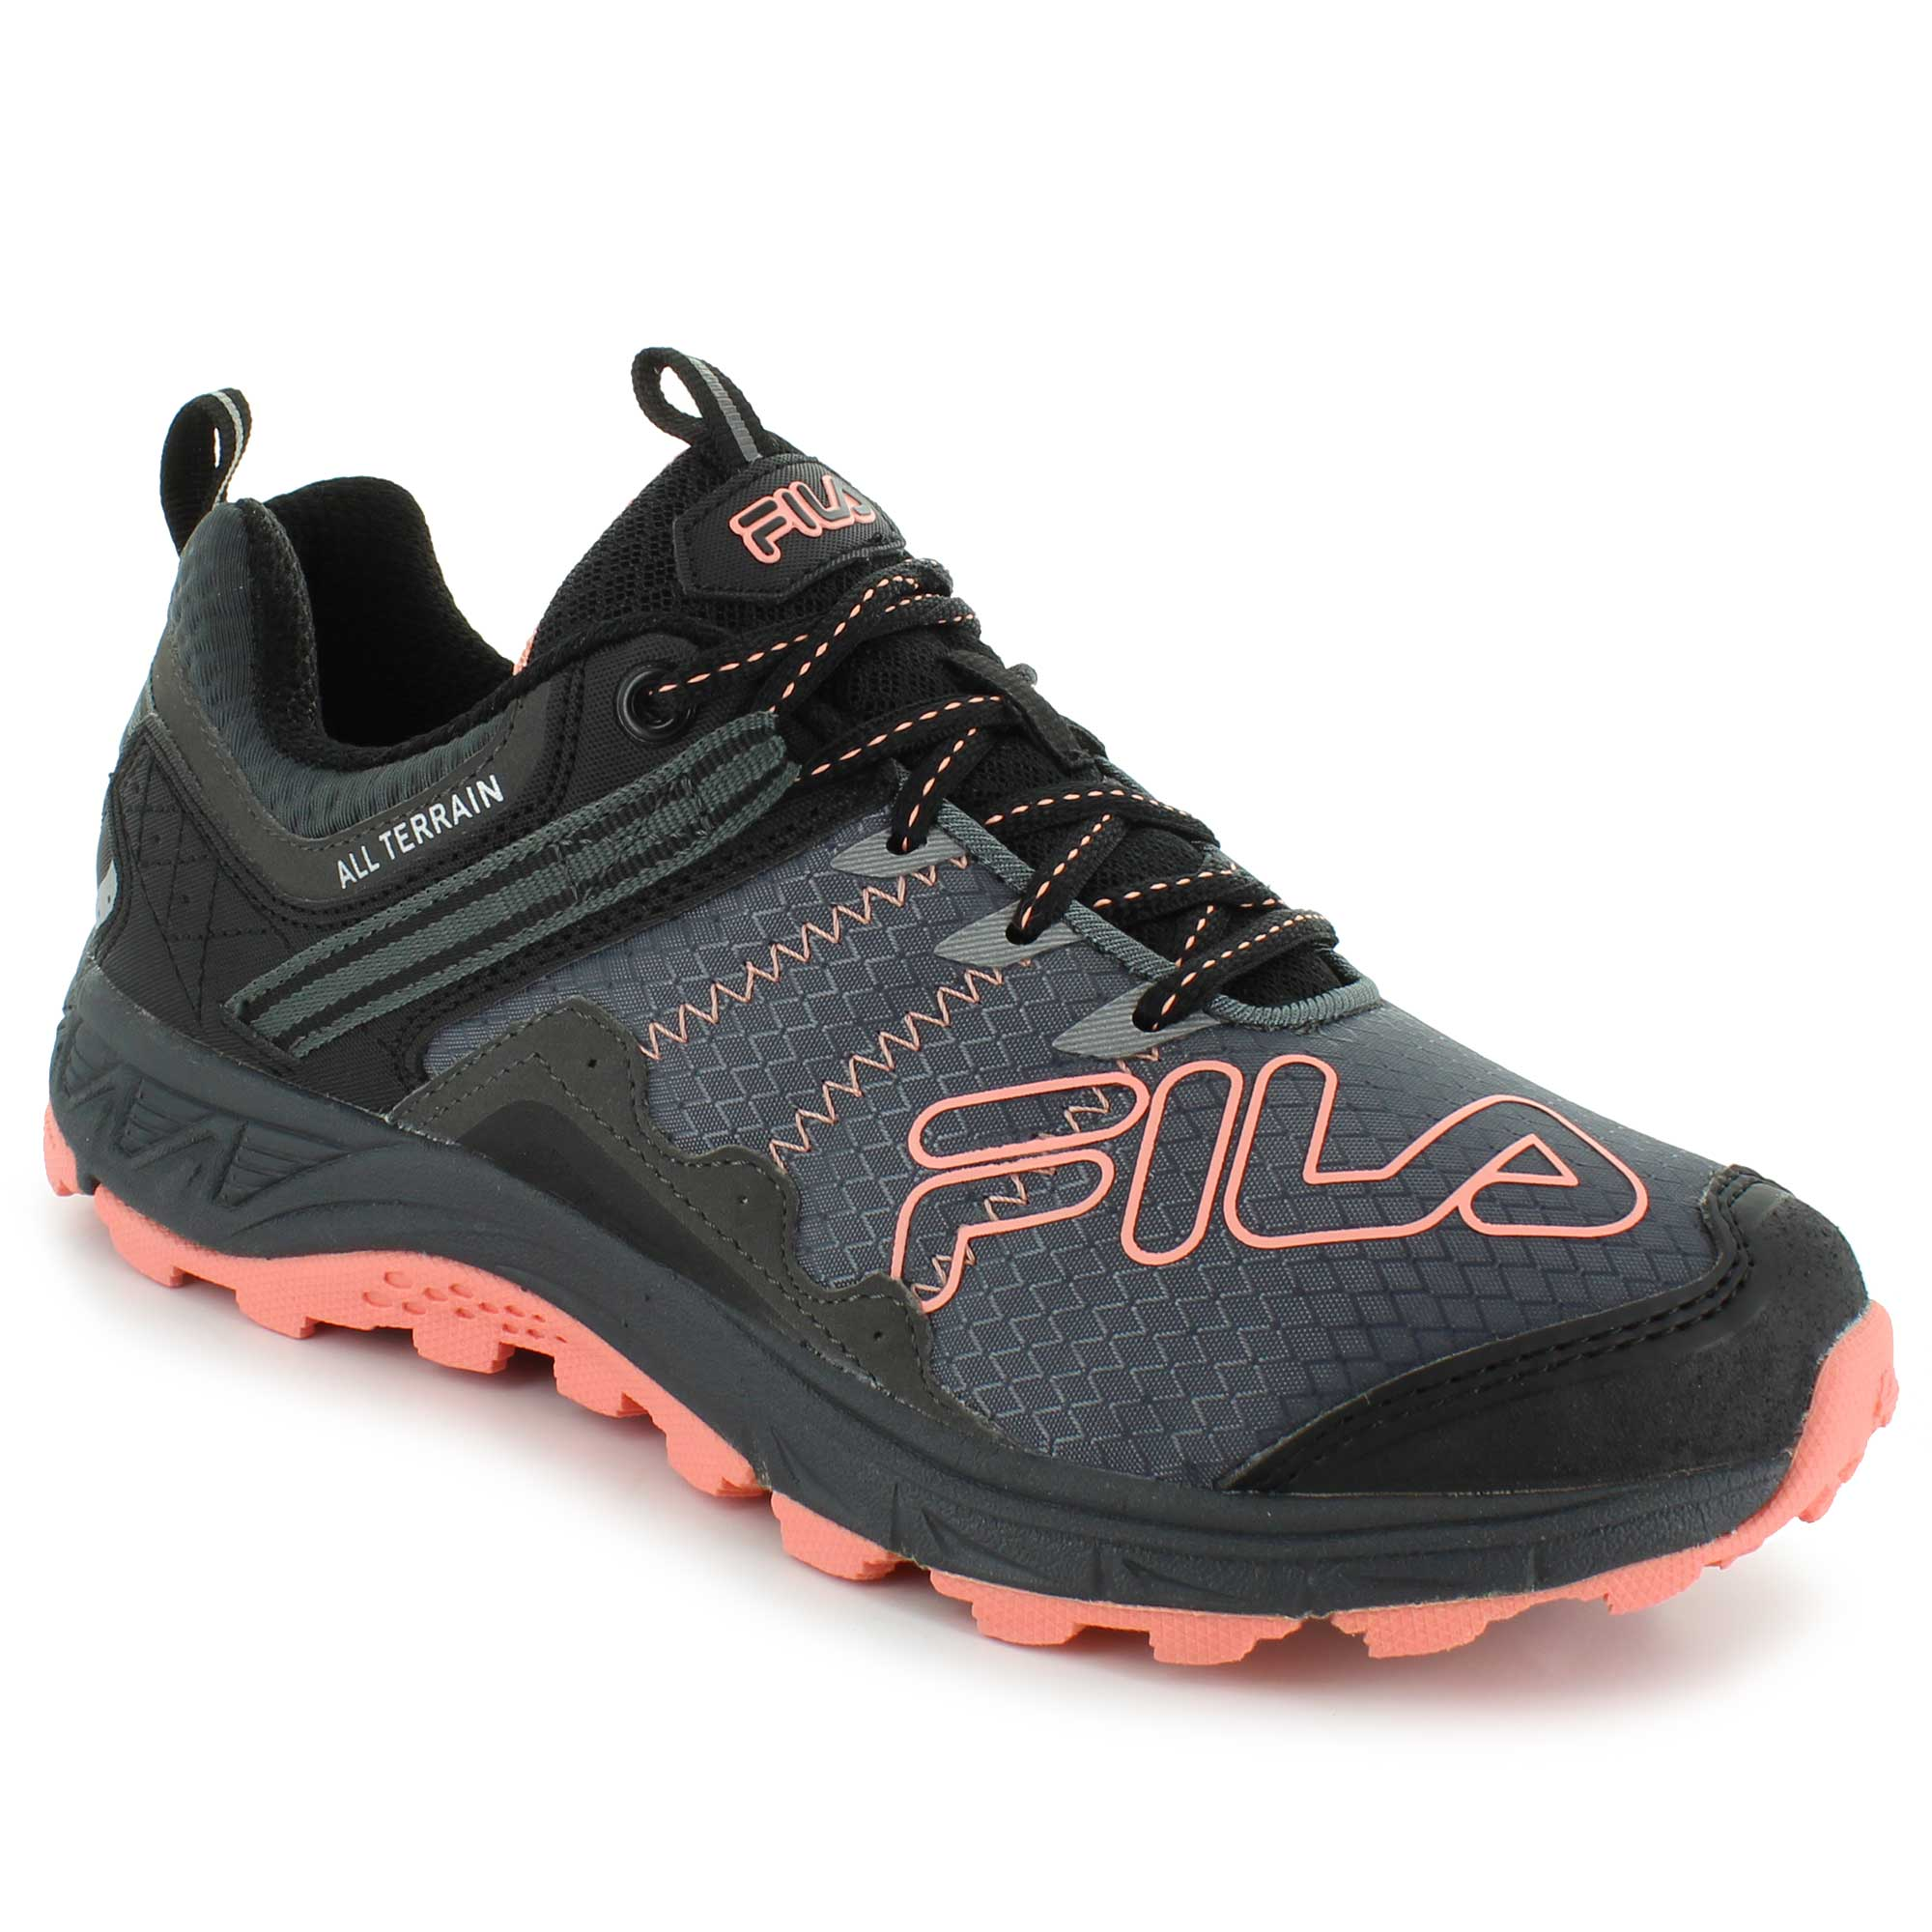 fila men's blowout 19 trail shoe